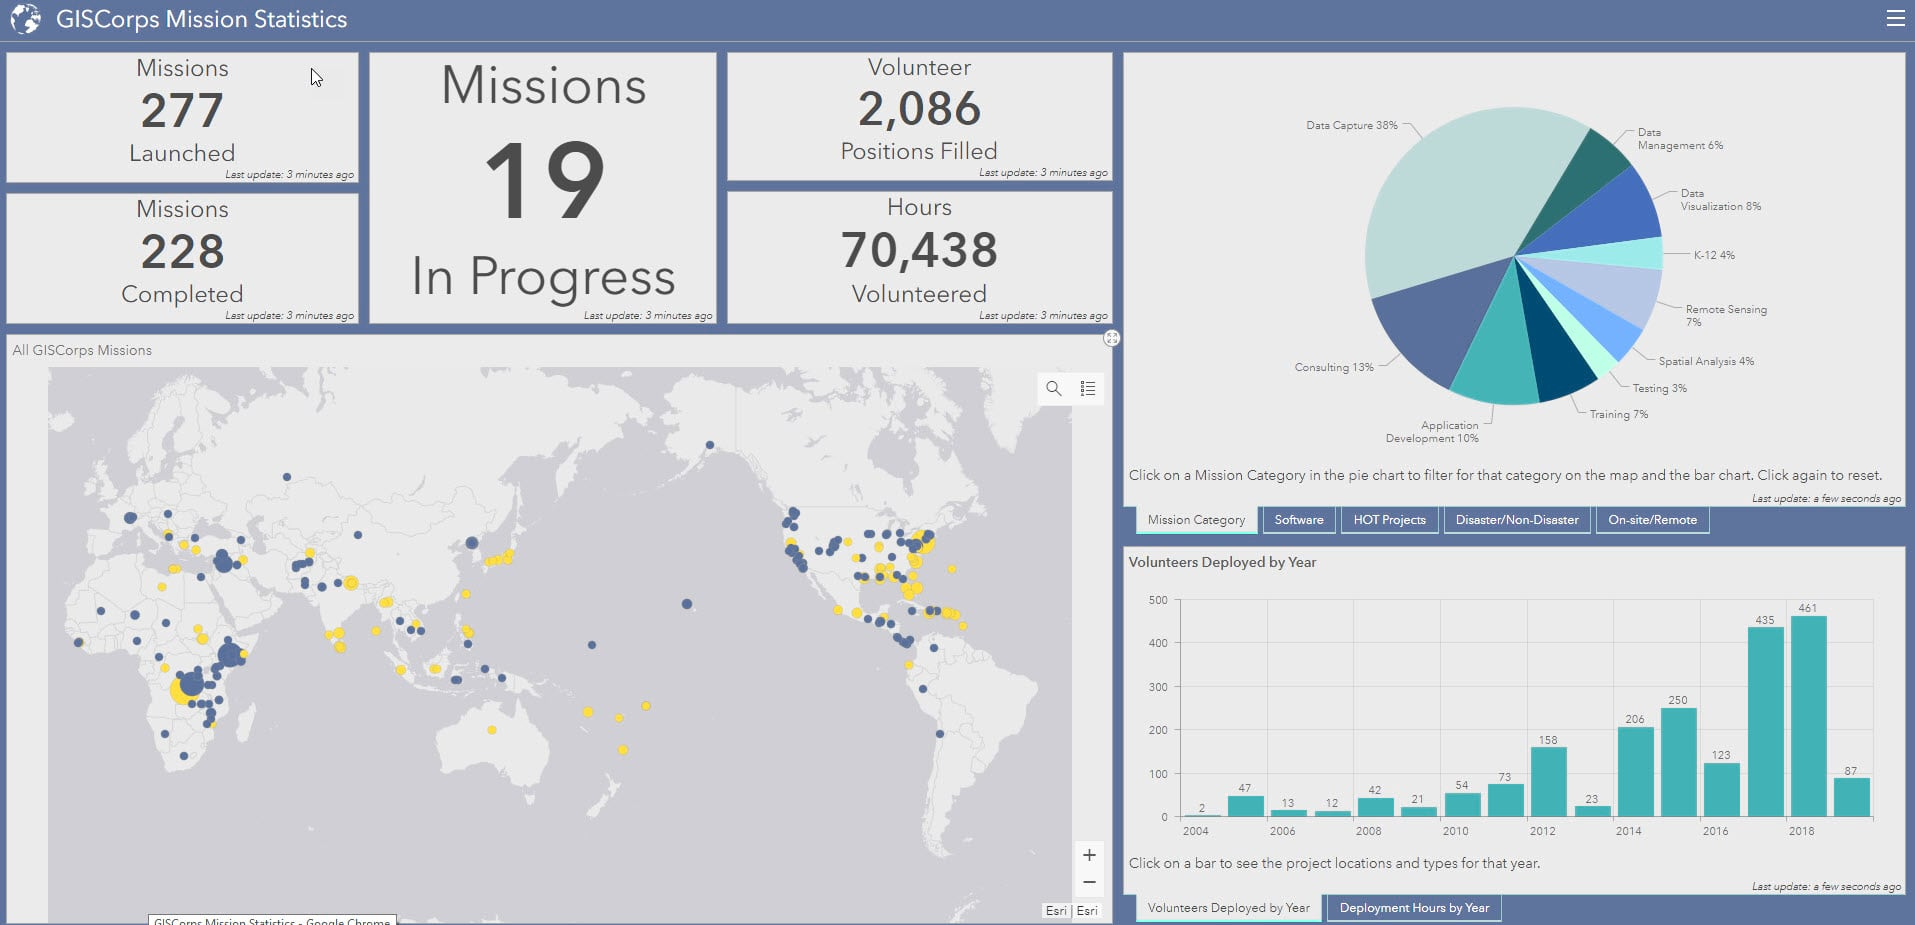 GISCorps Mission Statistics dashboard